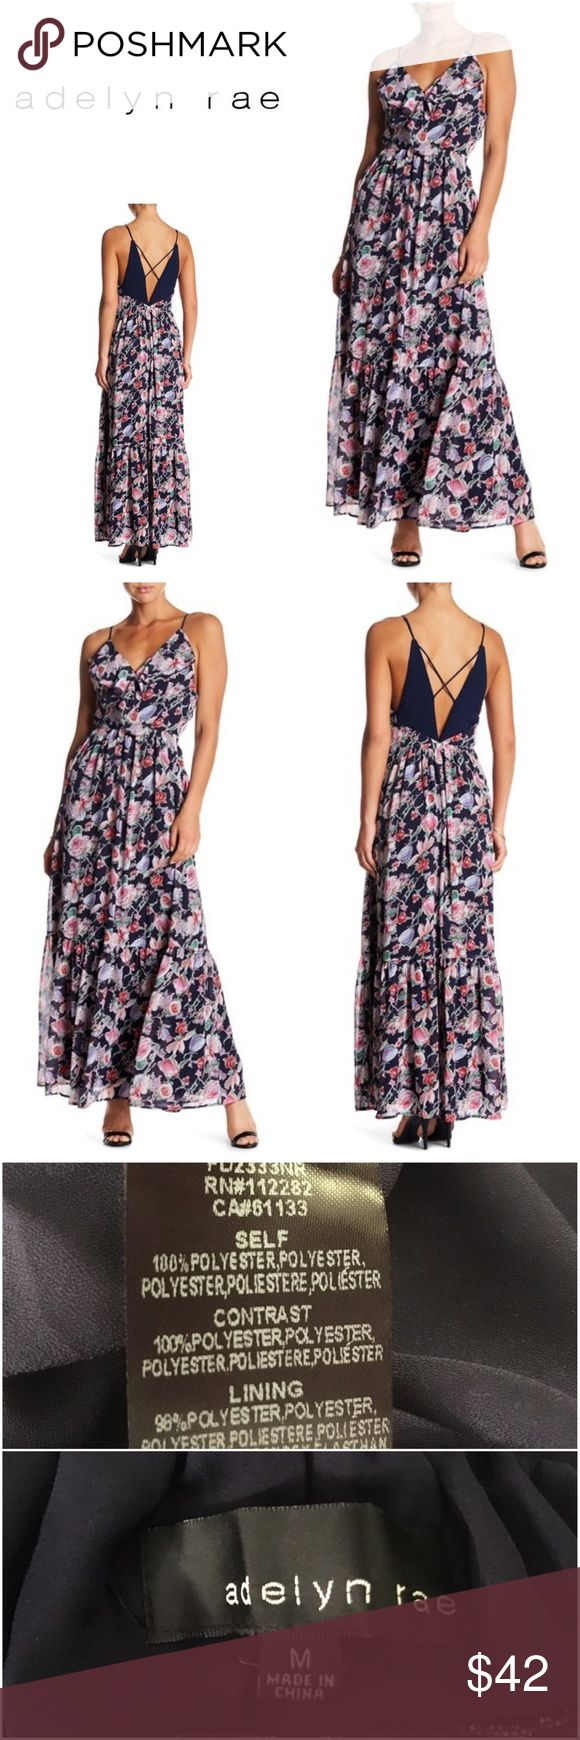 """New Adelyn Rae Printed Frill Maxi Dress New & never worn, Adelyn Rae Printed Frill Maxi Dress   Size Medium  Bust: 36.5"""" Waist: 29"""" Hips: 39""""  - Surplice neck with hidden snap button closure - Sleeveless - Adjustable spaghetti straps - Crisscross back straps - Ruffled trim - Allover floral print - Lined - Approx. 60"""" length (size S) - Imported Fiber Content Self/contrast: 100% polyester Lining: 98% polyester, 2% spandex  Free gift with every purchase! Your purchase goes towards the…"""